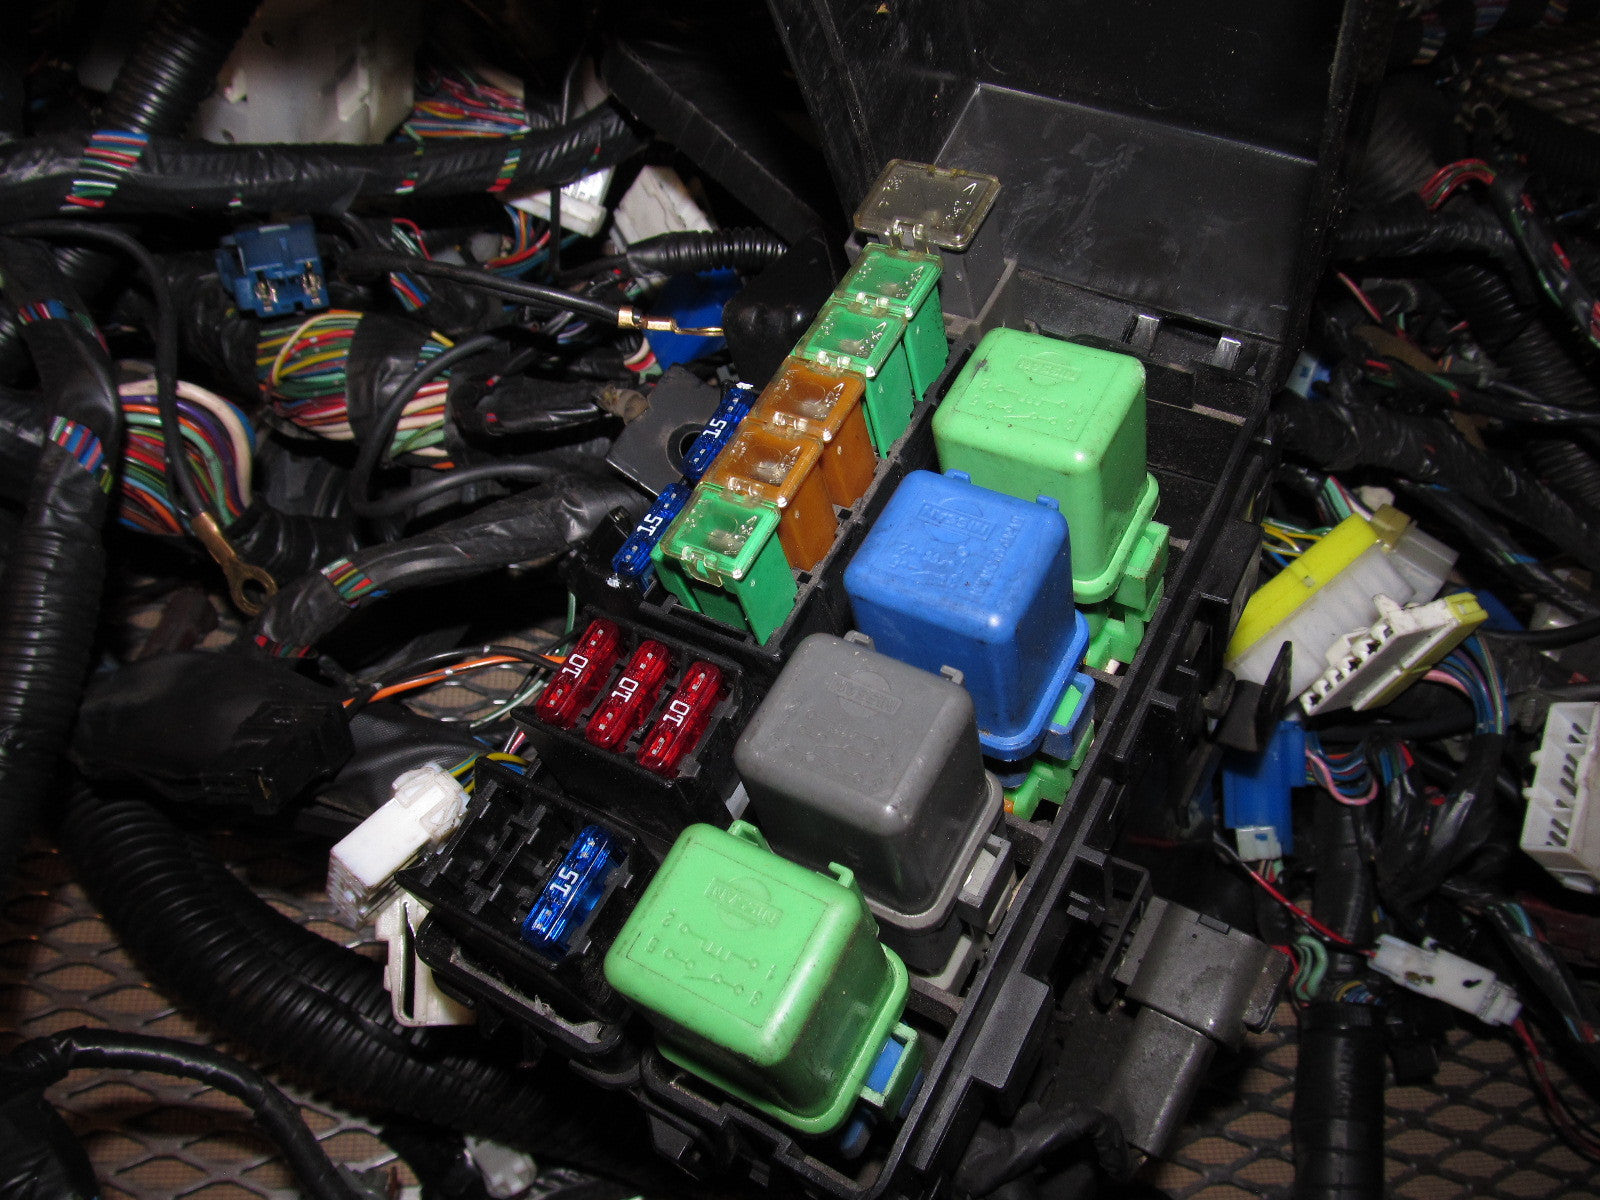 s13 fuse box wiring diagram wiring diagrams best 240sx battery fuse box wiring diagram data 300zx fuse box diagram s13 fuse box wiring diagram